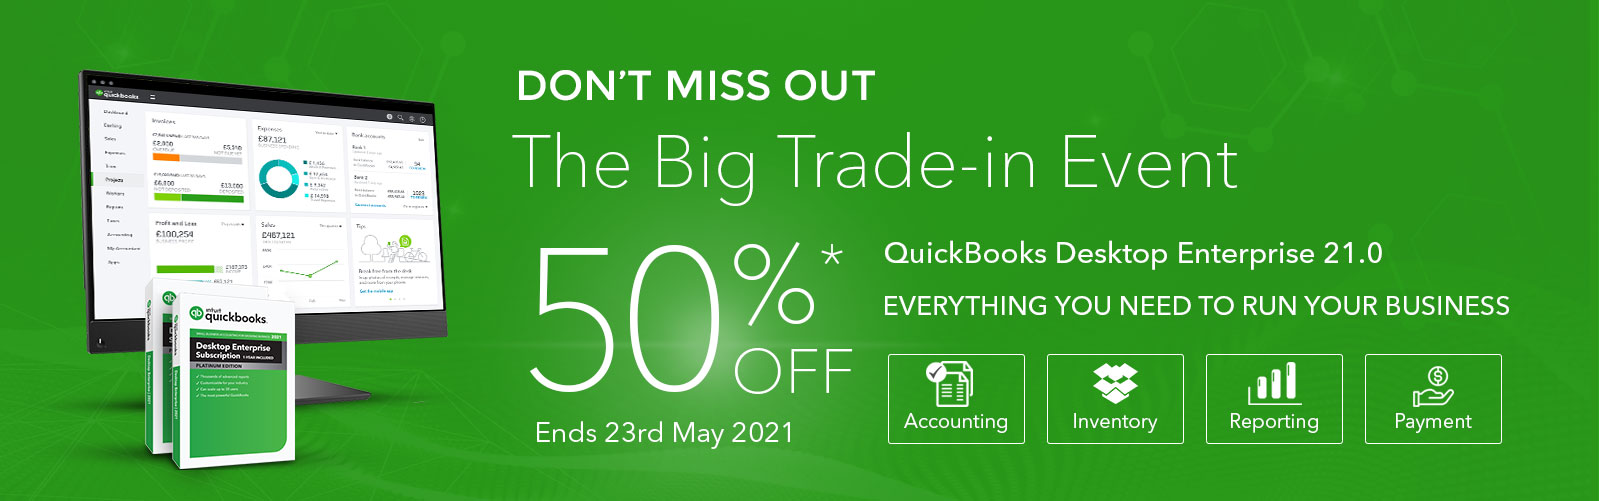 The Big Trade-In Event - Save up to 50%*